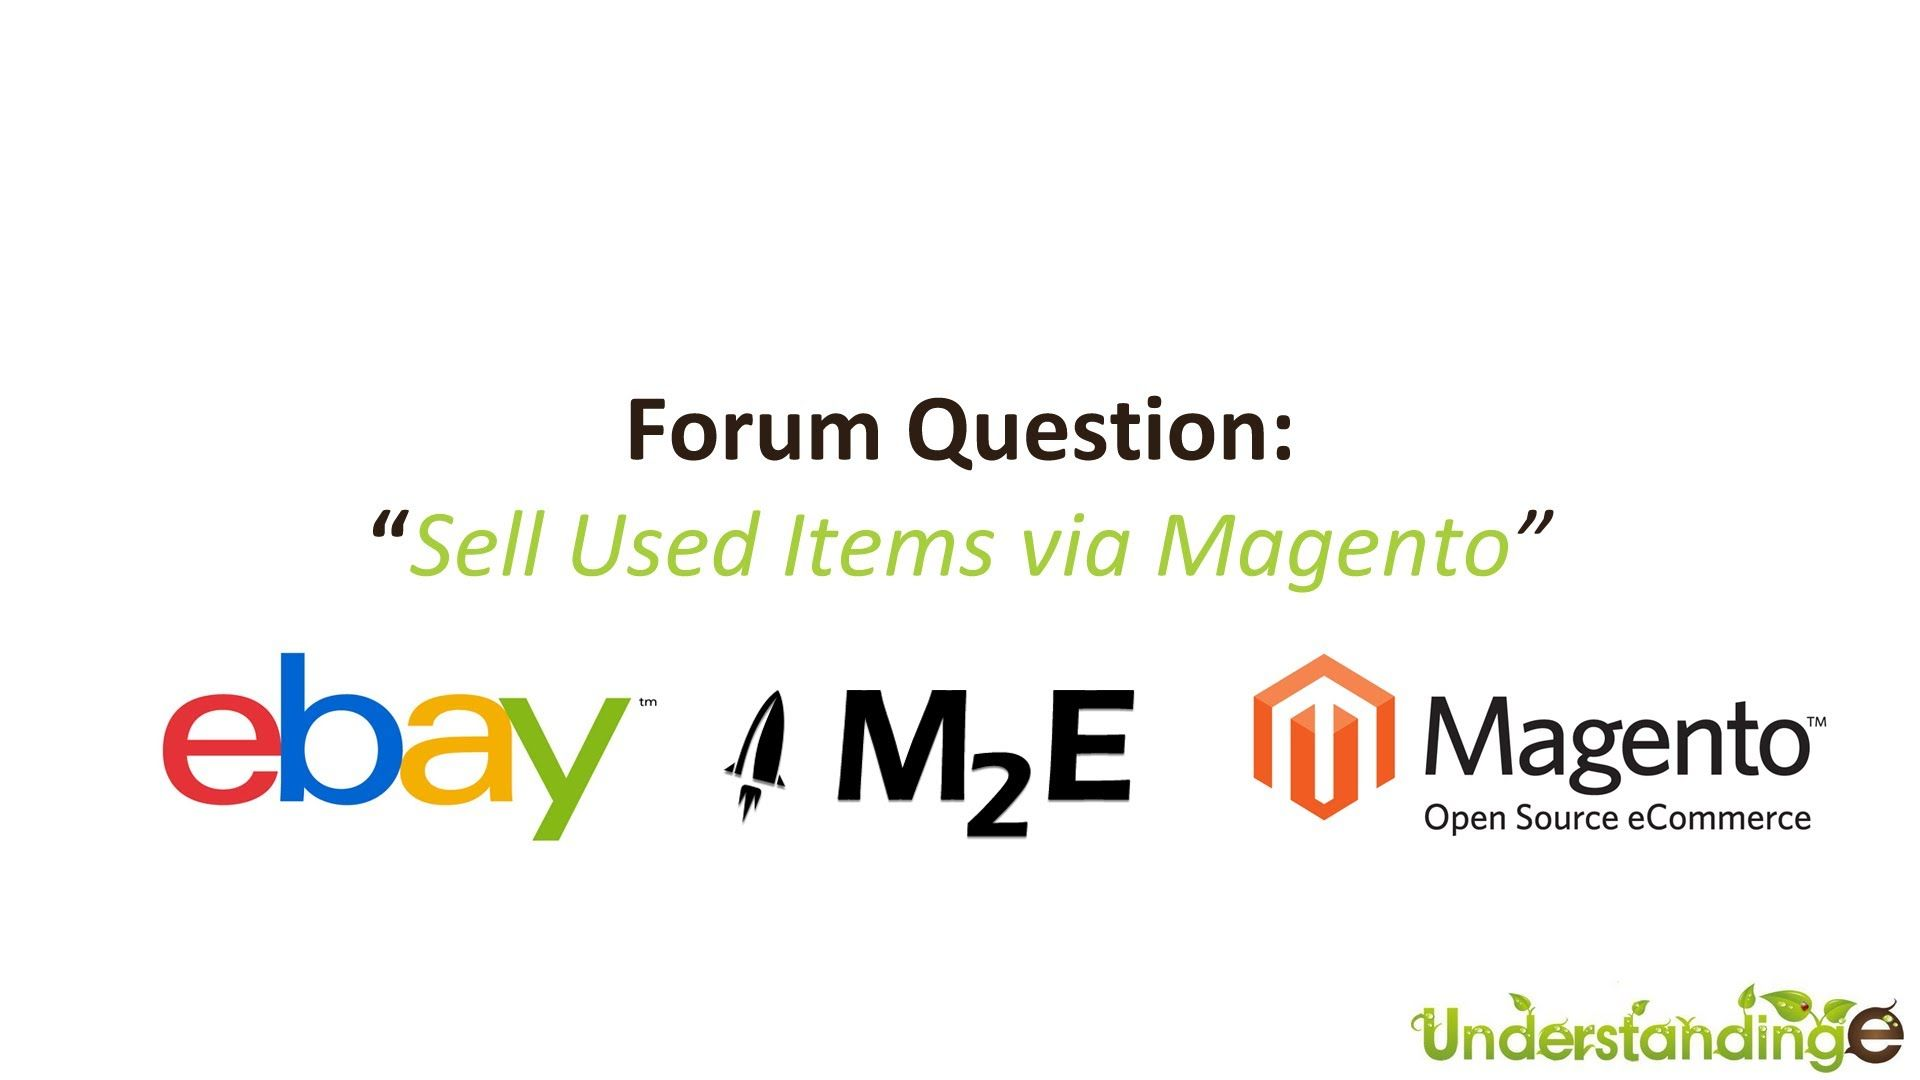 M2epro setting auction reserve prices in magento to sell on ebay m2epro setting auction reserve prices in magento to sell on ebay baditri Choice Image